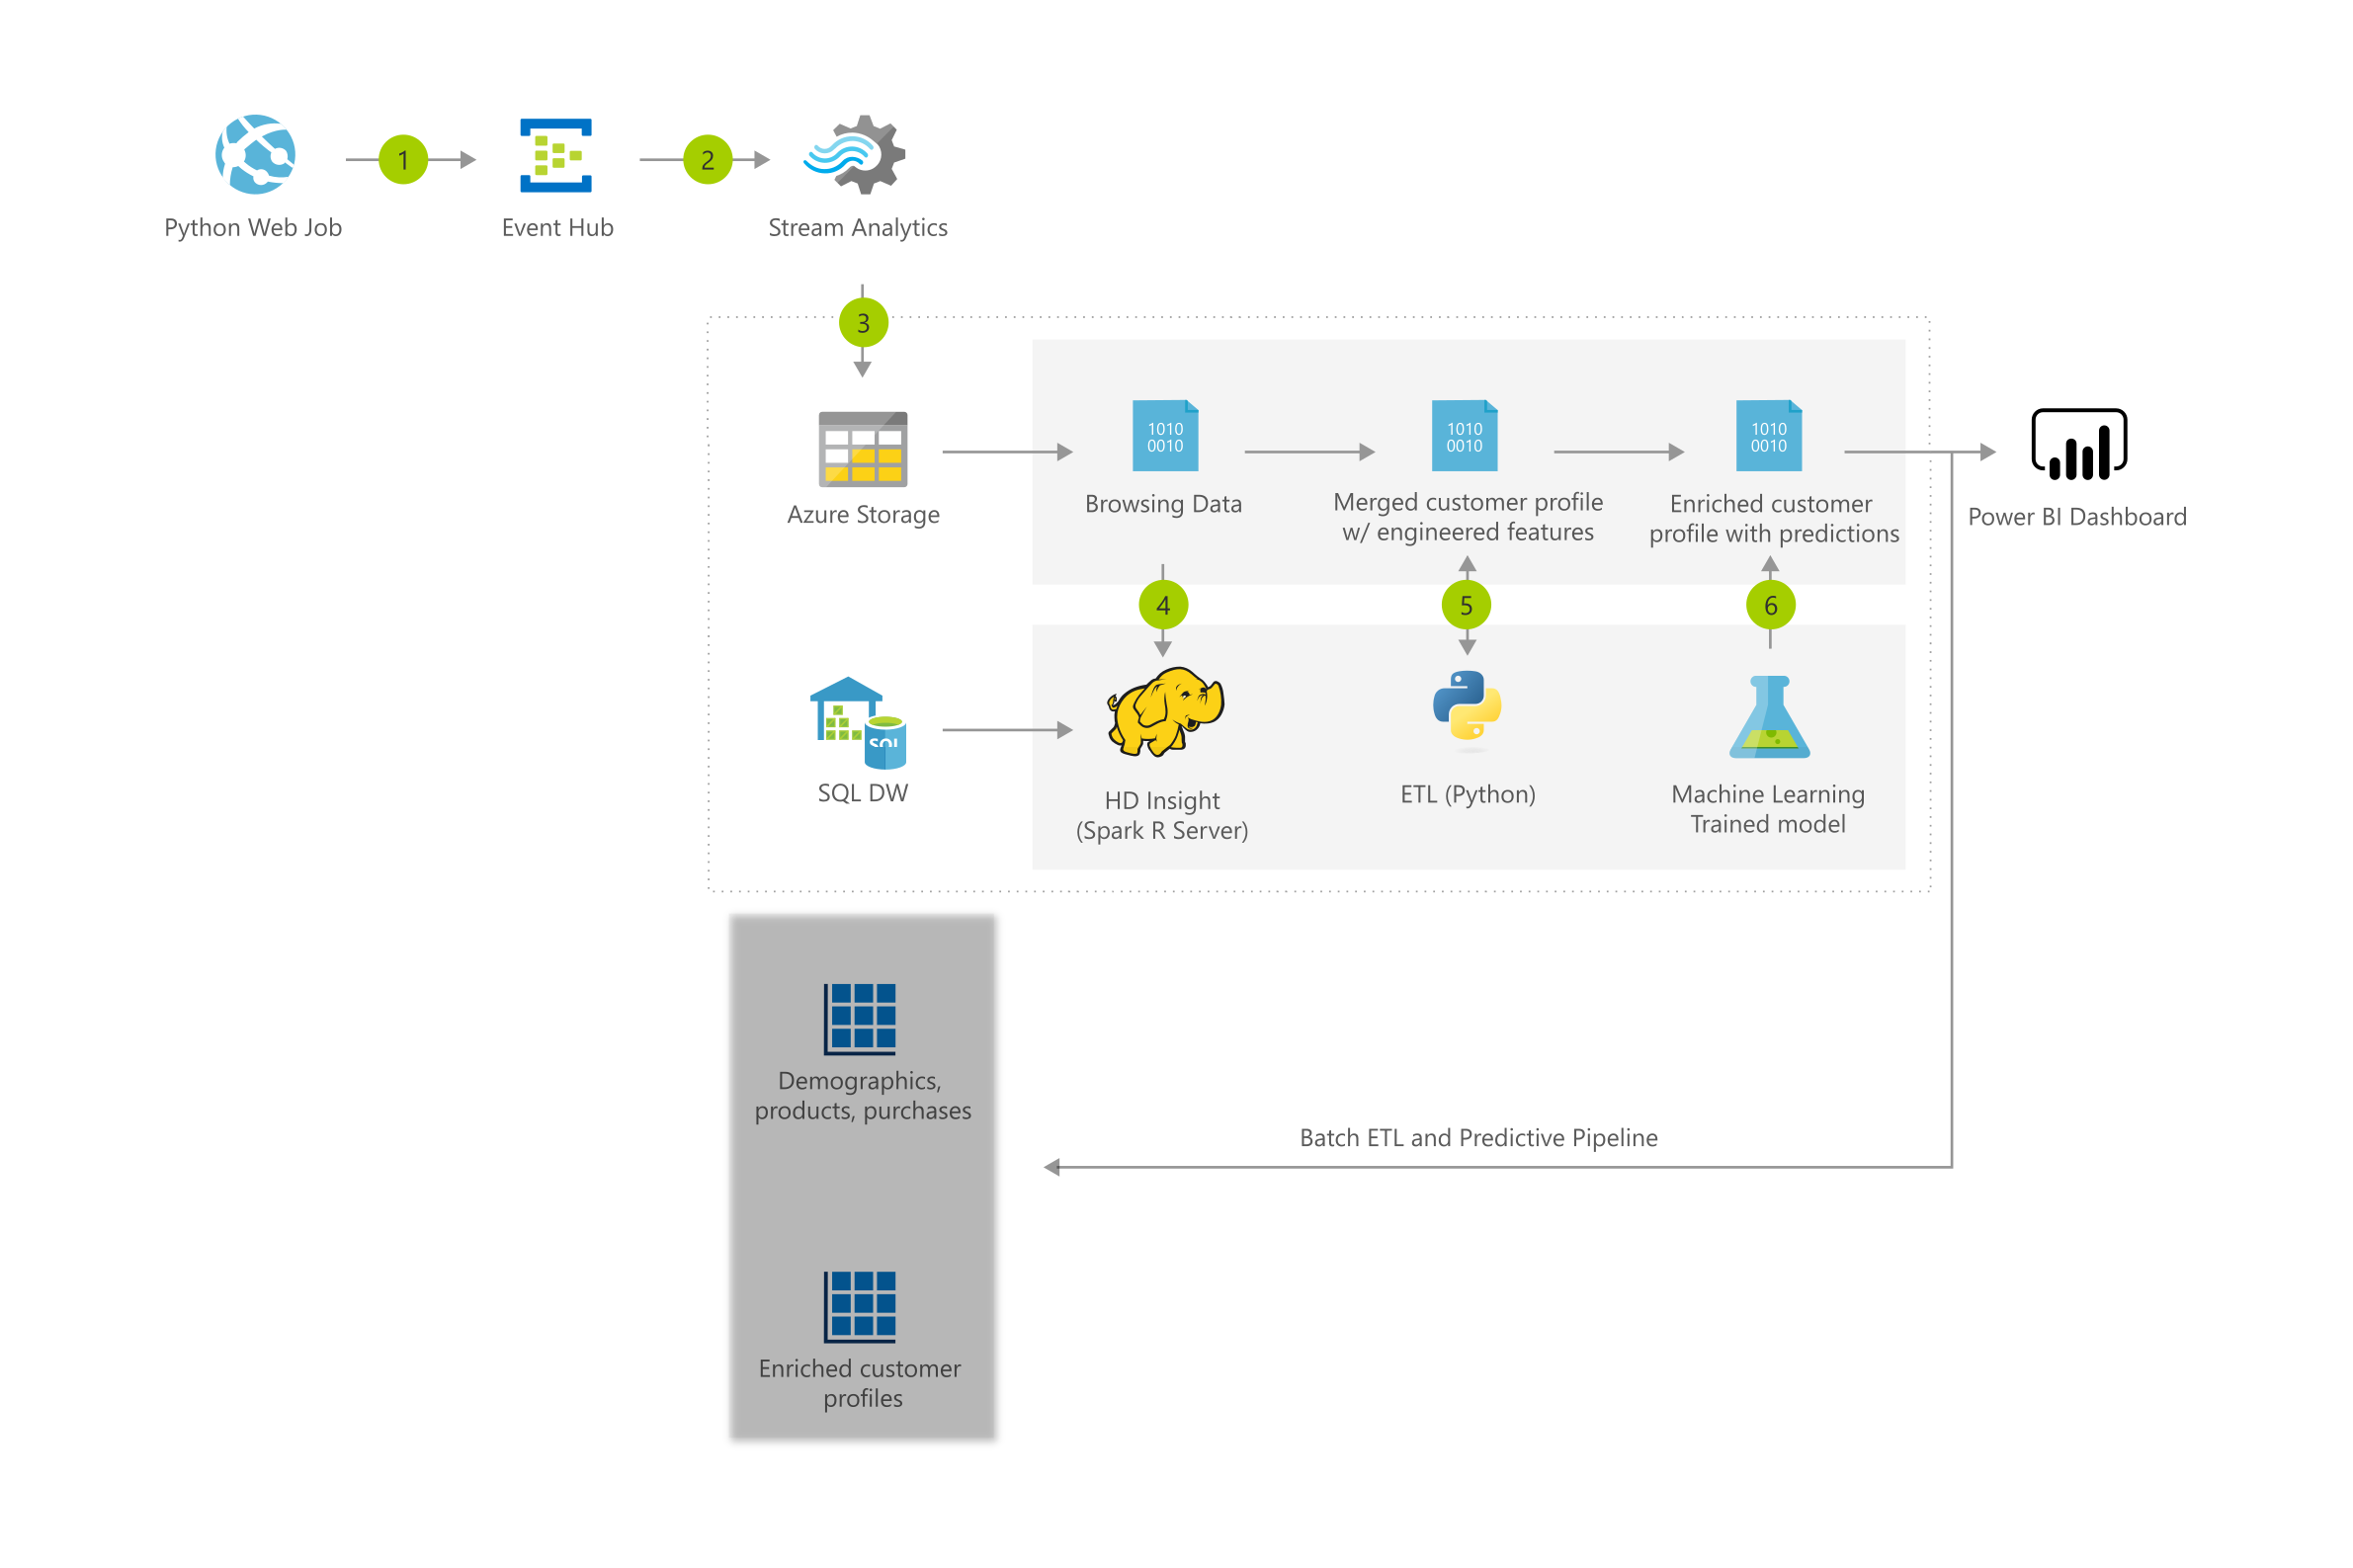 Thumbnail of Product recommendations for retail using Azure Architectural Diagram.